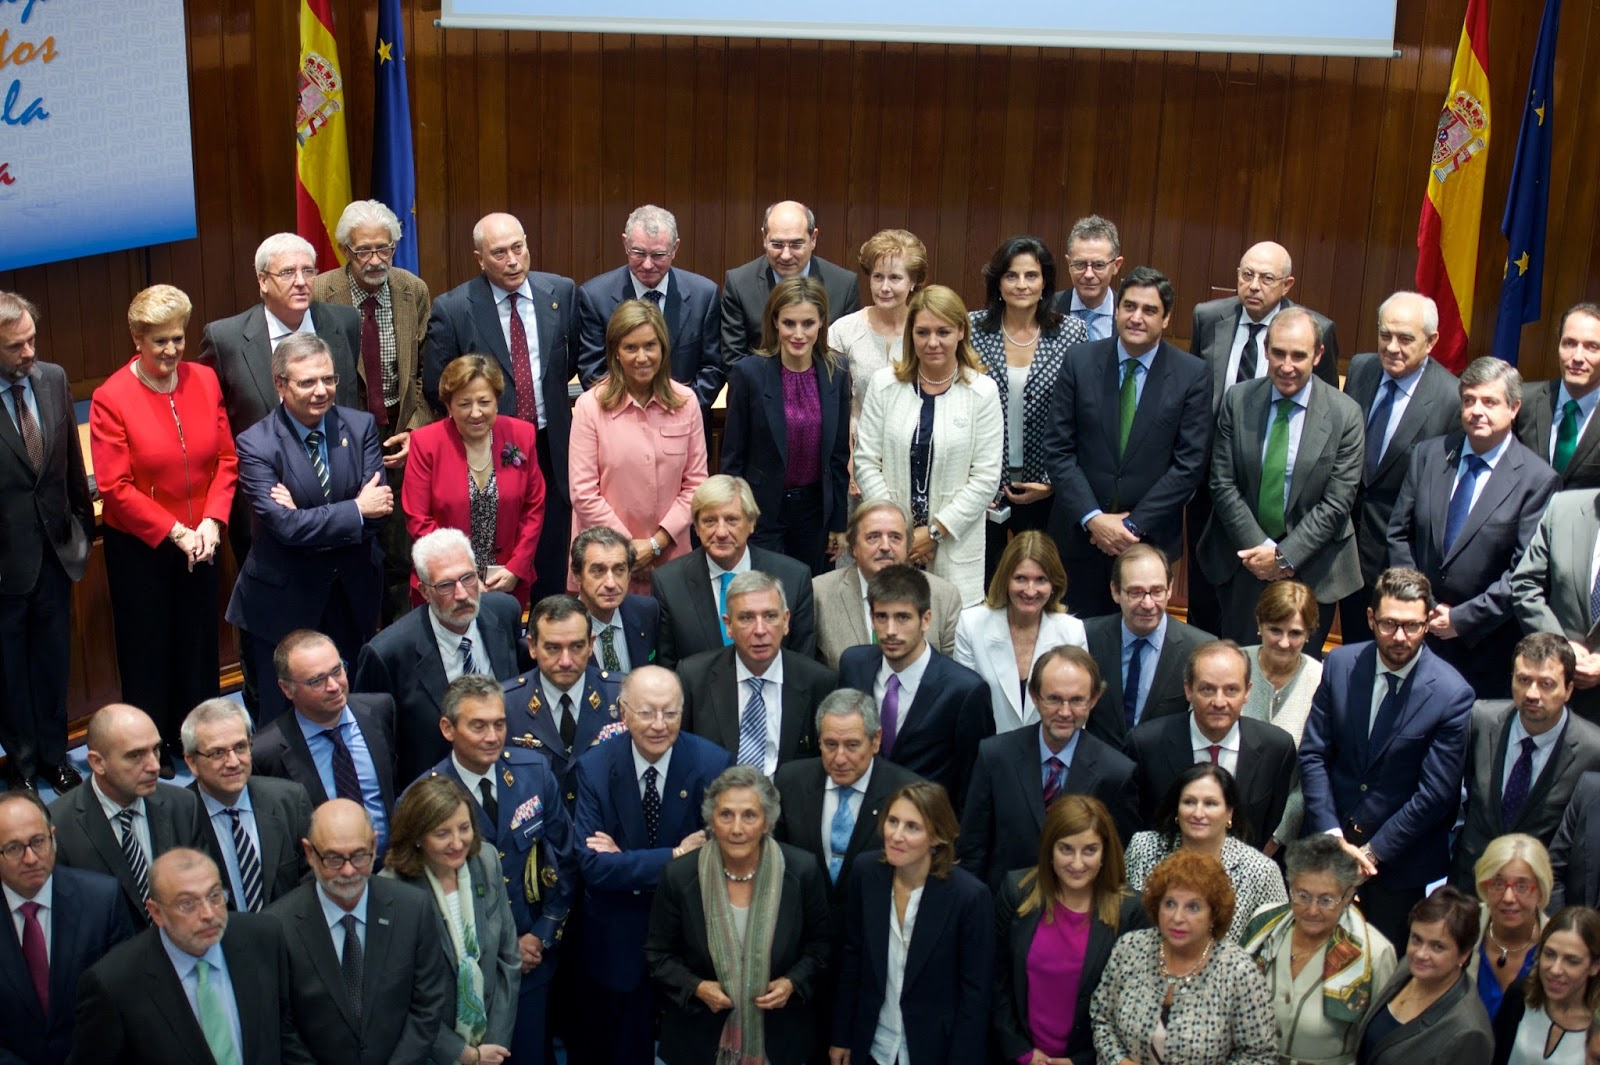 25th Anniversary Ceremony of the Spanish National Transplant